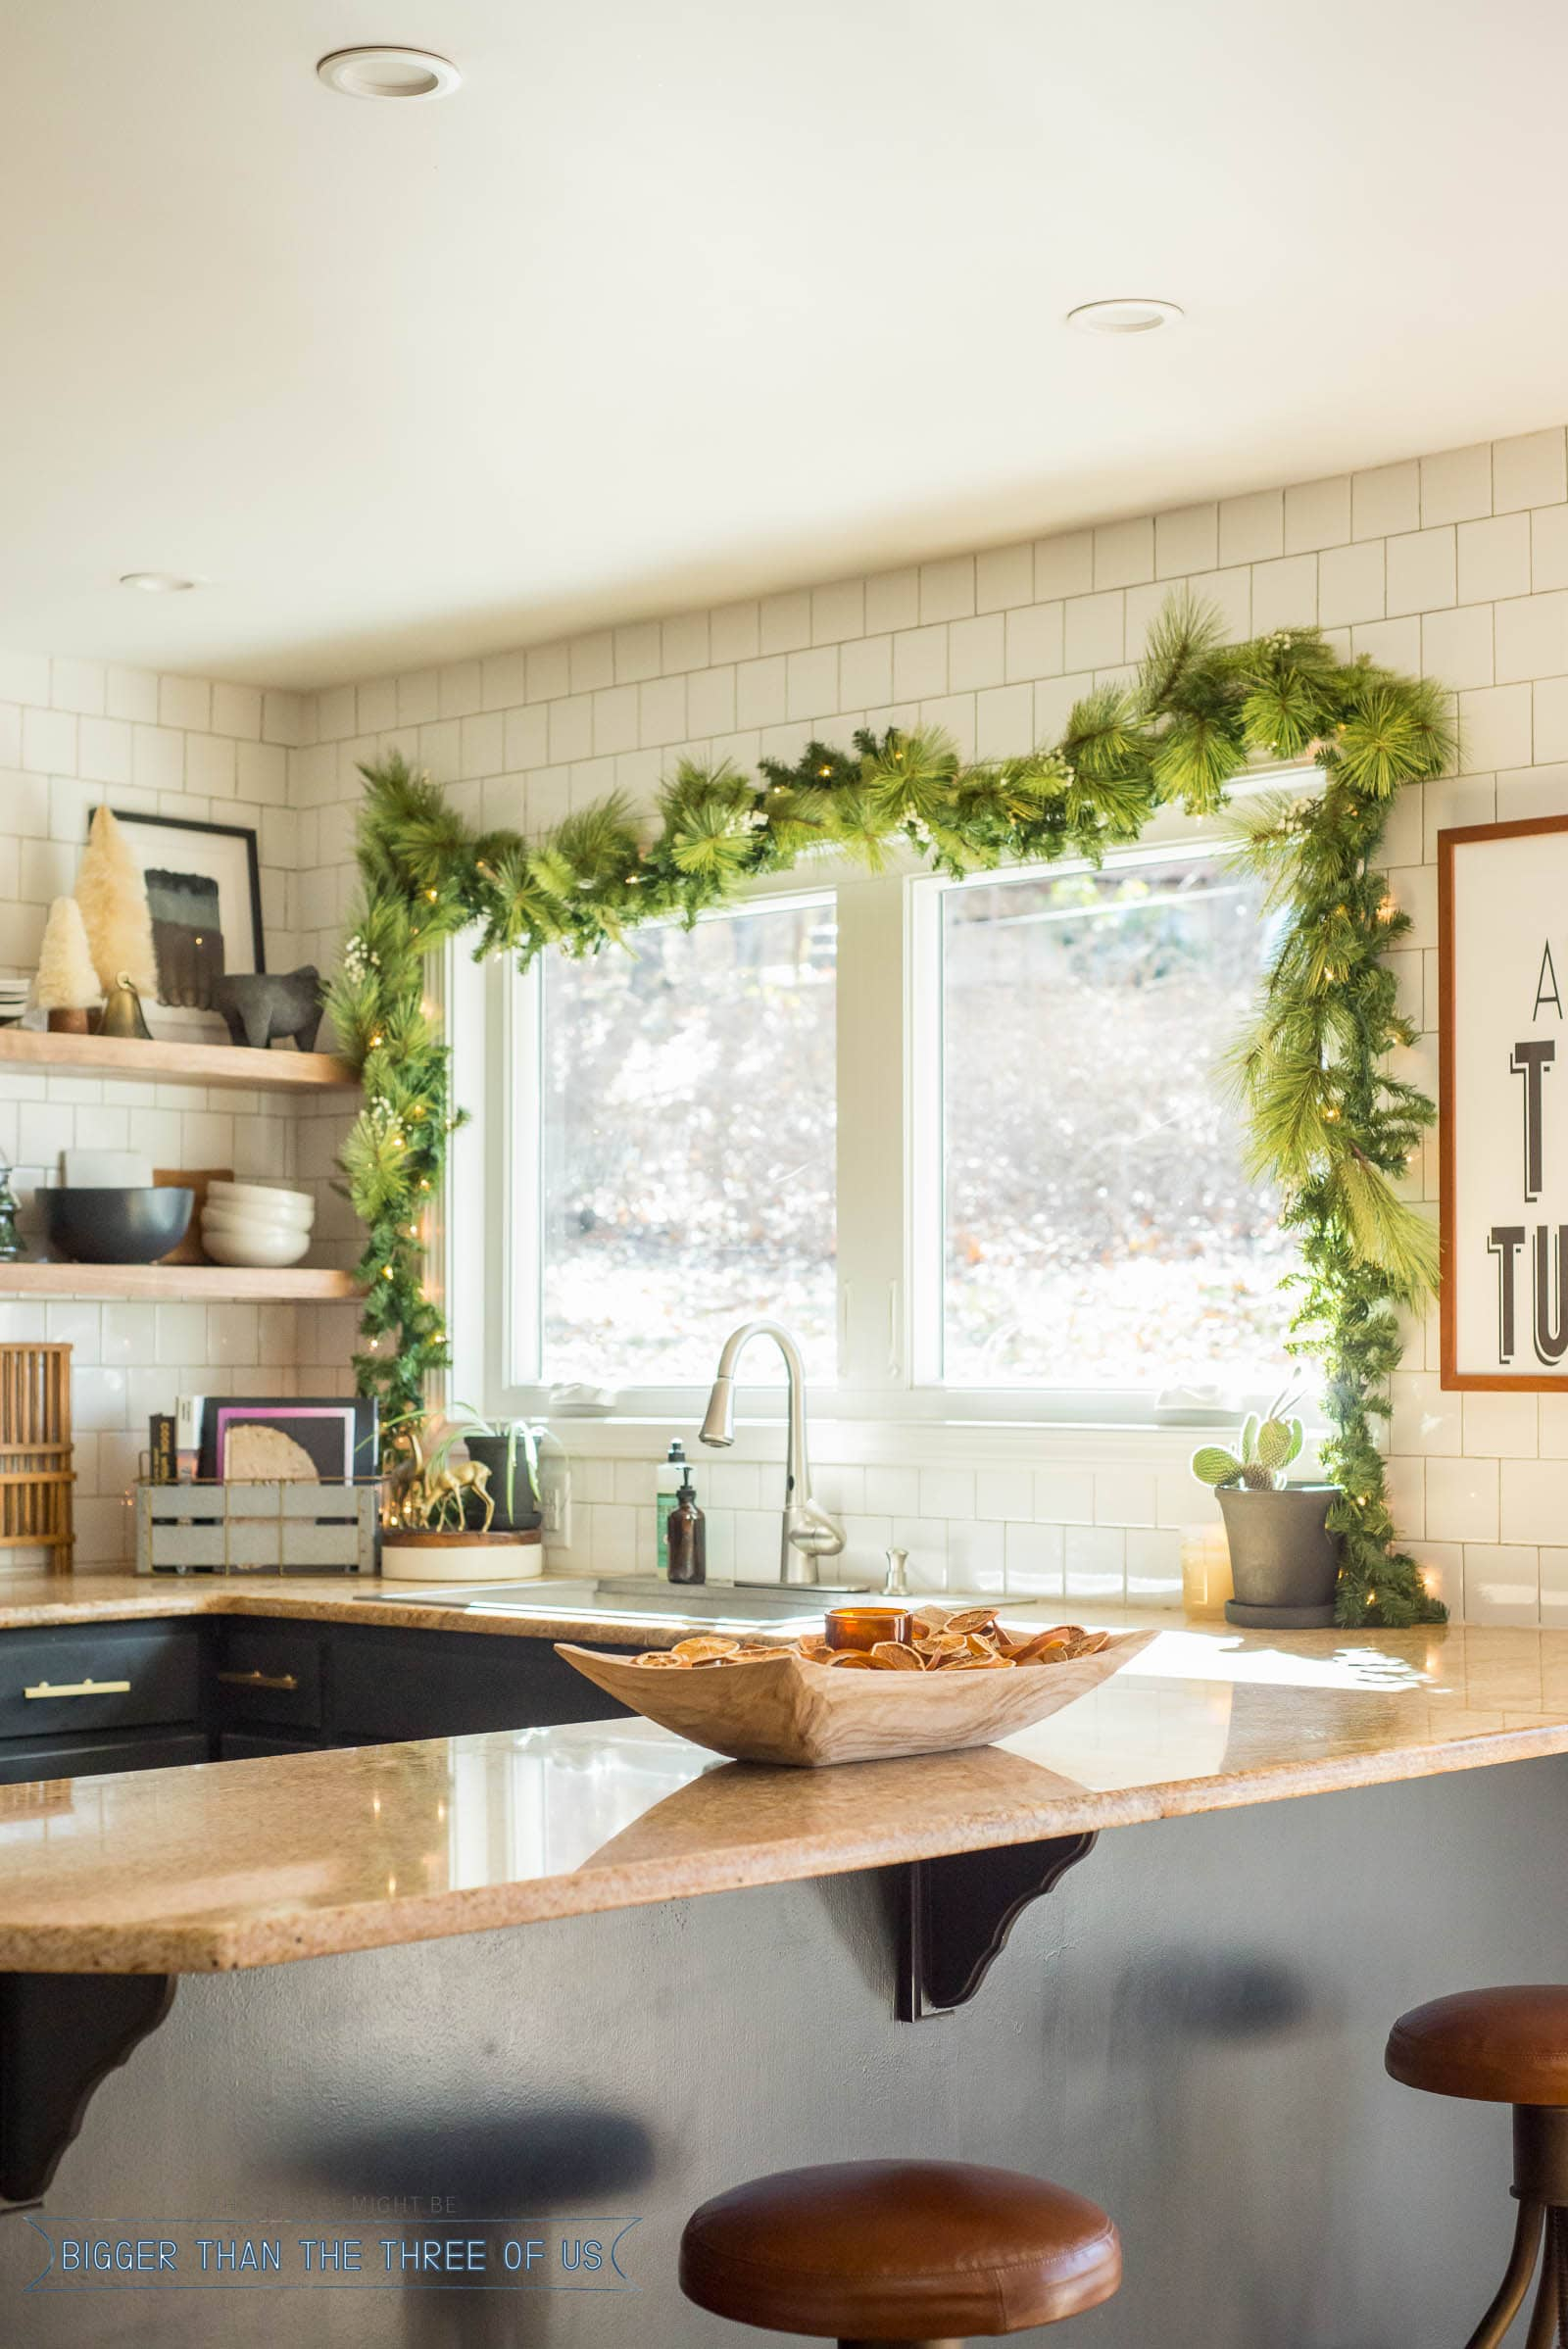 Christmas Swag over kitchen windows with dried oranges in a bowl on granite countertop